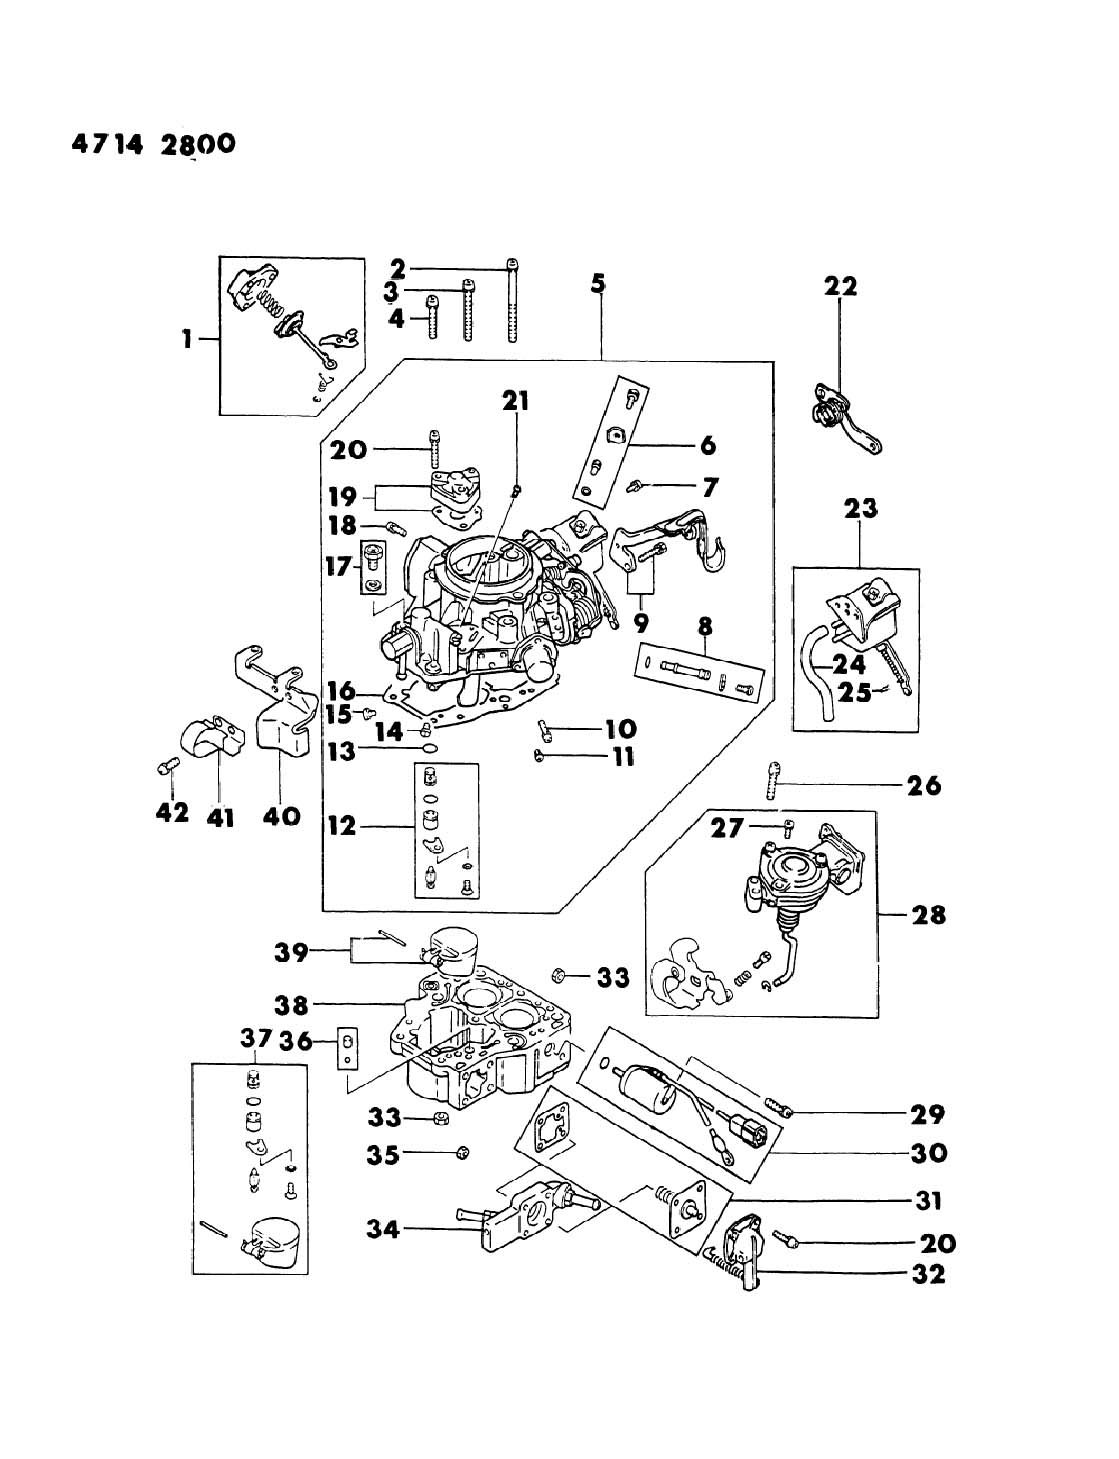 T Max 15 Engine Diagram Wiring Diagrams Dodge Ram 50 1984 Toyota 22r Fuse Box Auto Car With Labels